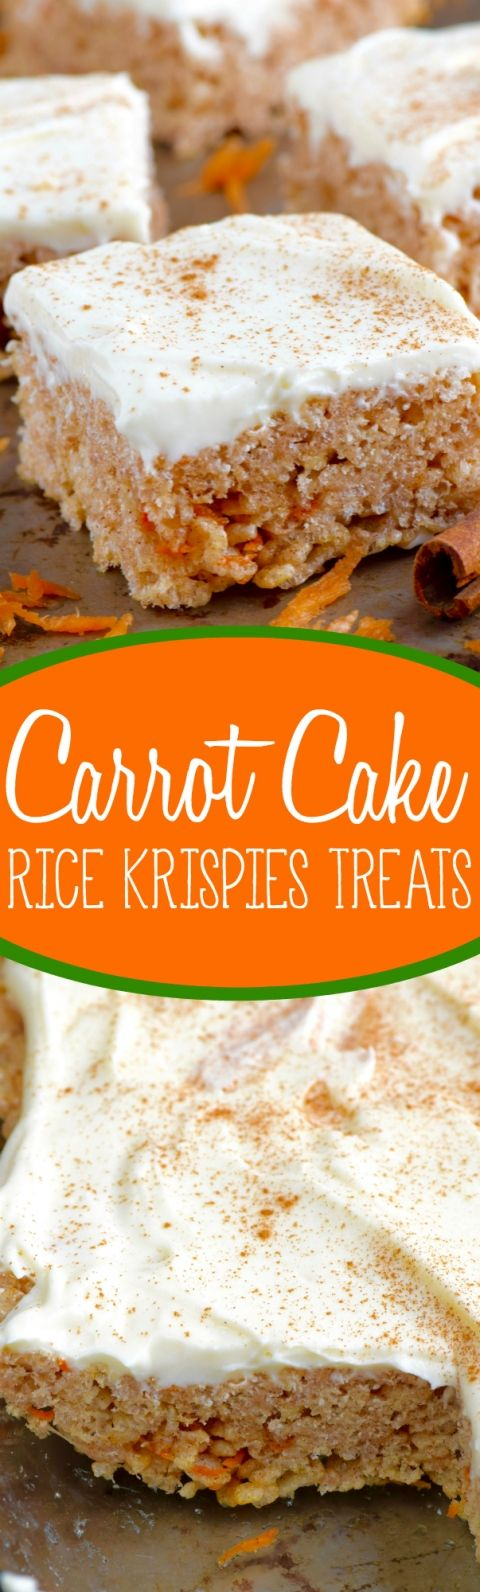 These Carrot Cake Rice Krispies® Treats are an absolutely amazing twist on your favorite easy treat! #ricekrispiestreats